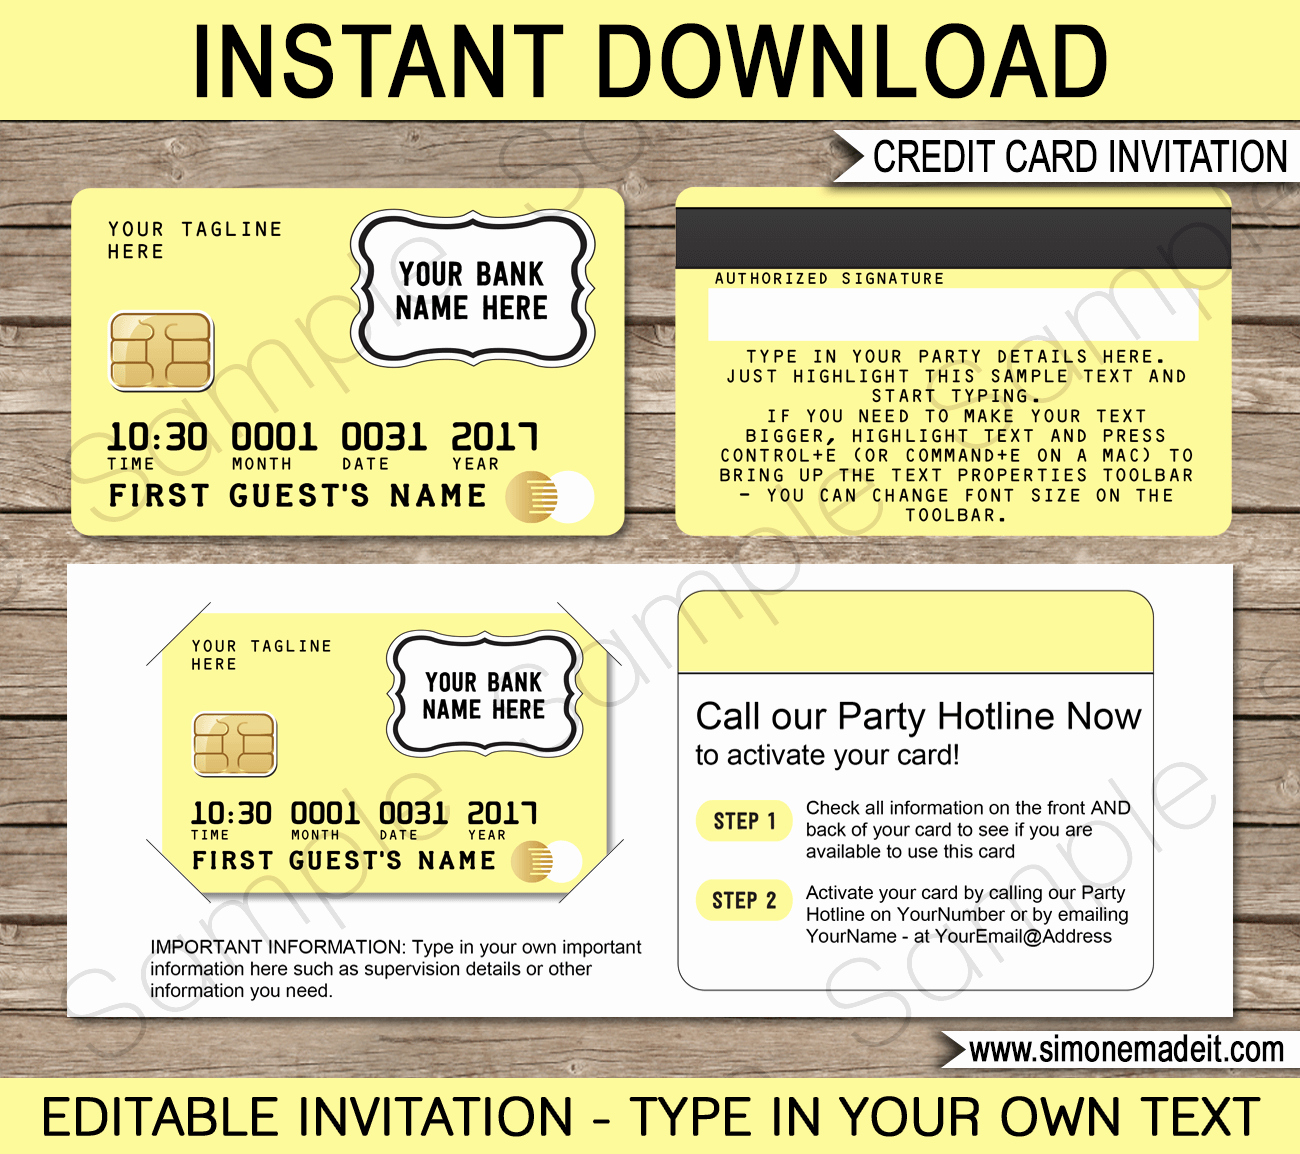 Credit Card Invitation Template Awesome Yellow Credit Card Invitations